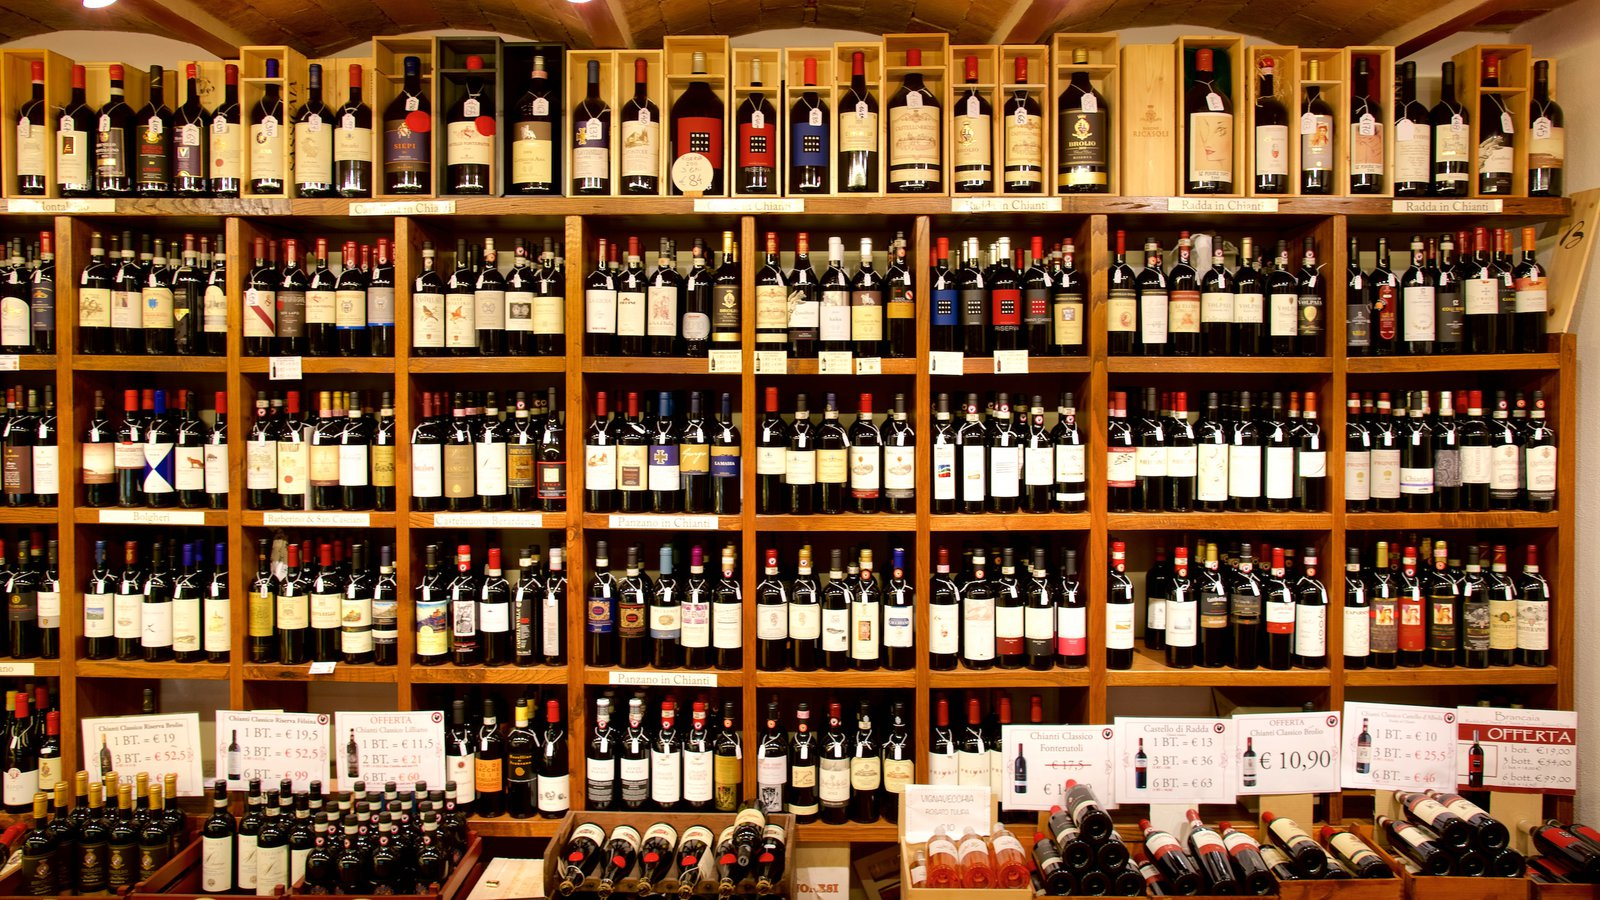 Radda in Chianti which includes interior views and drinks or beverages